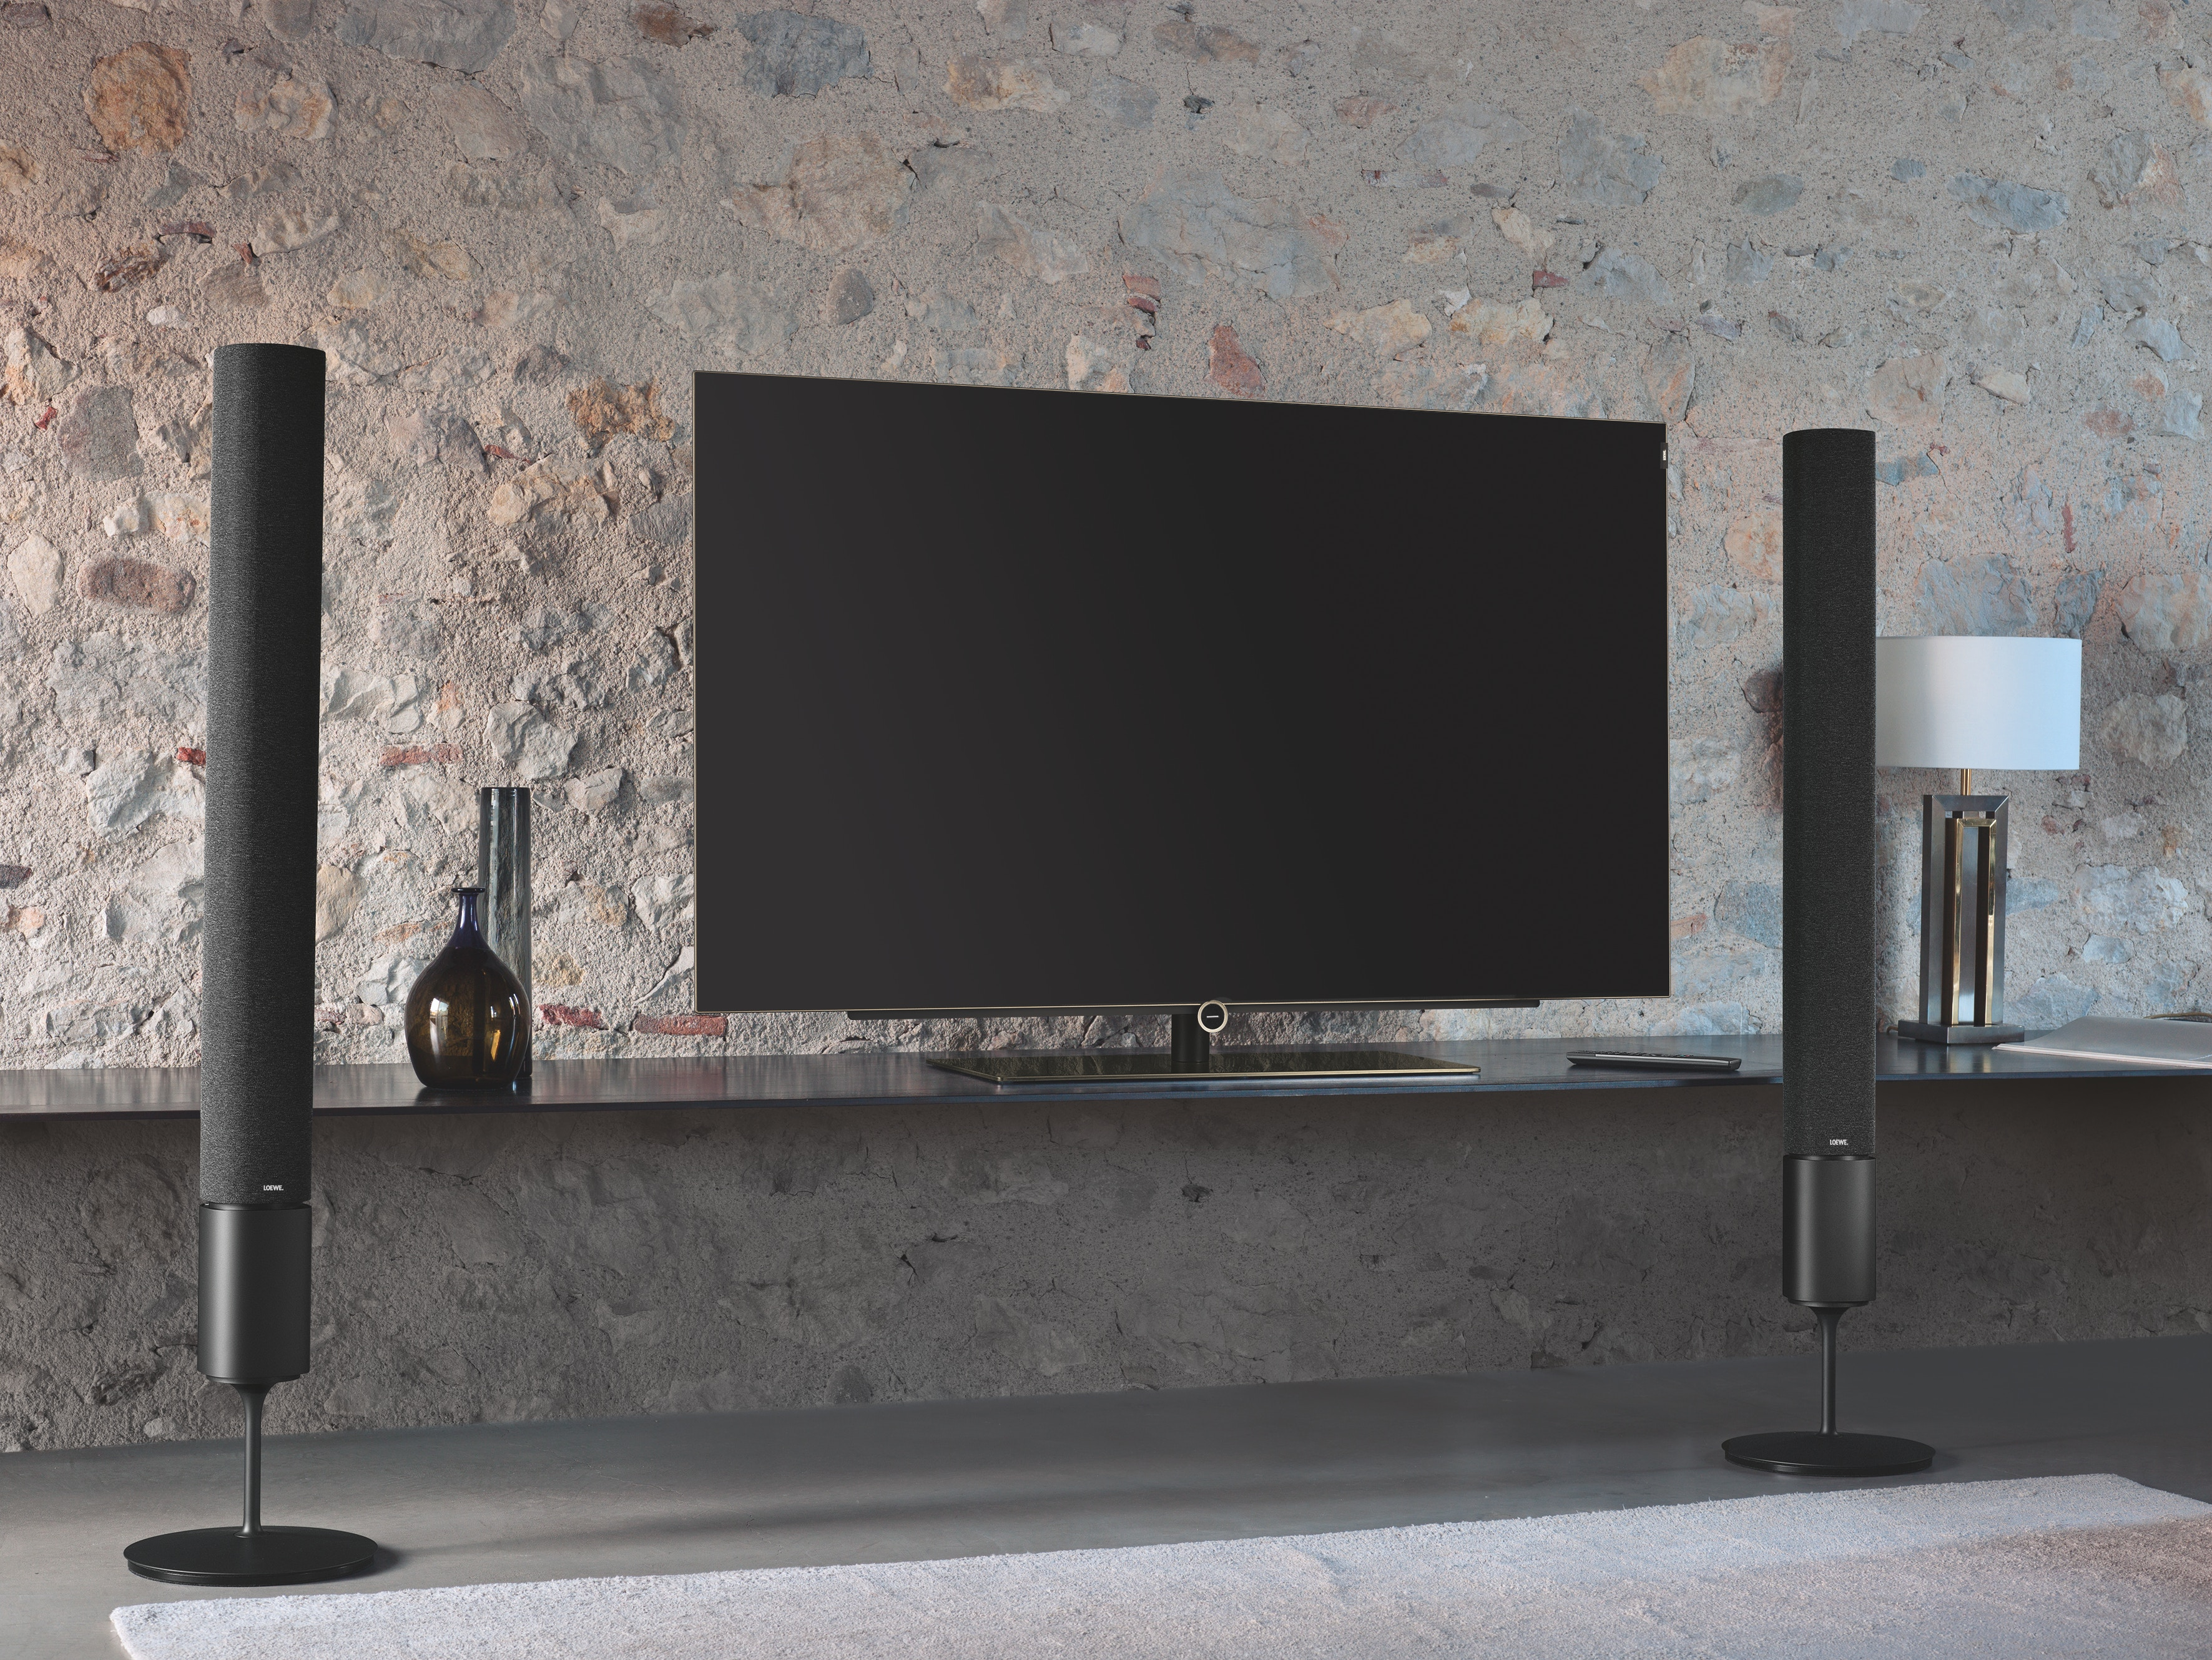 How to plan your home theater